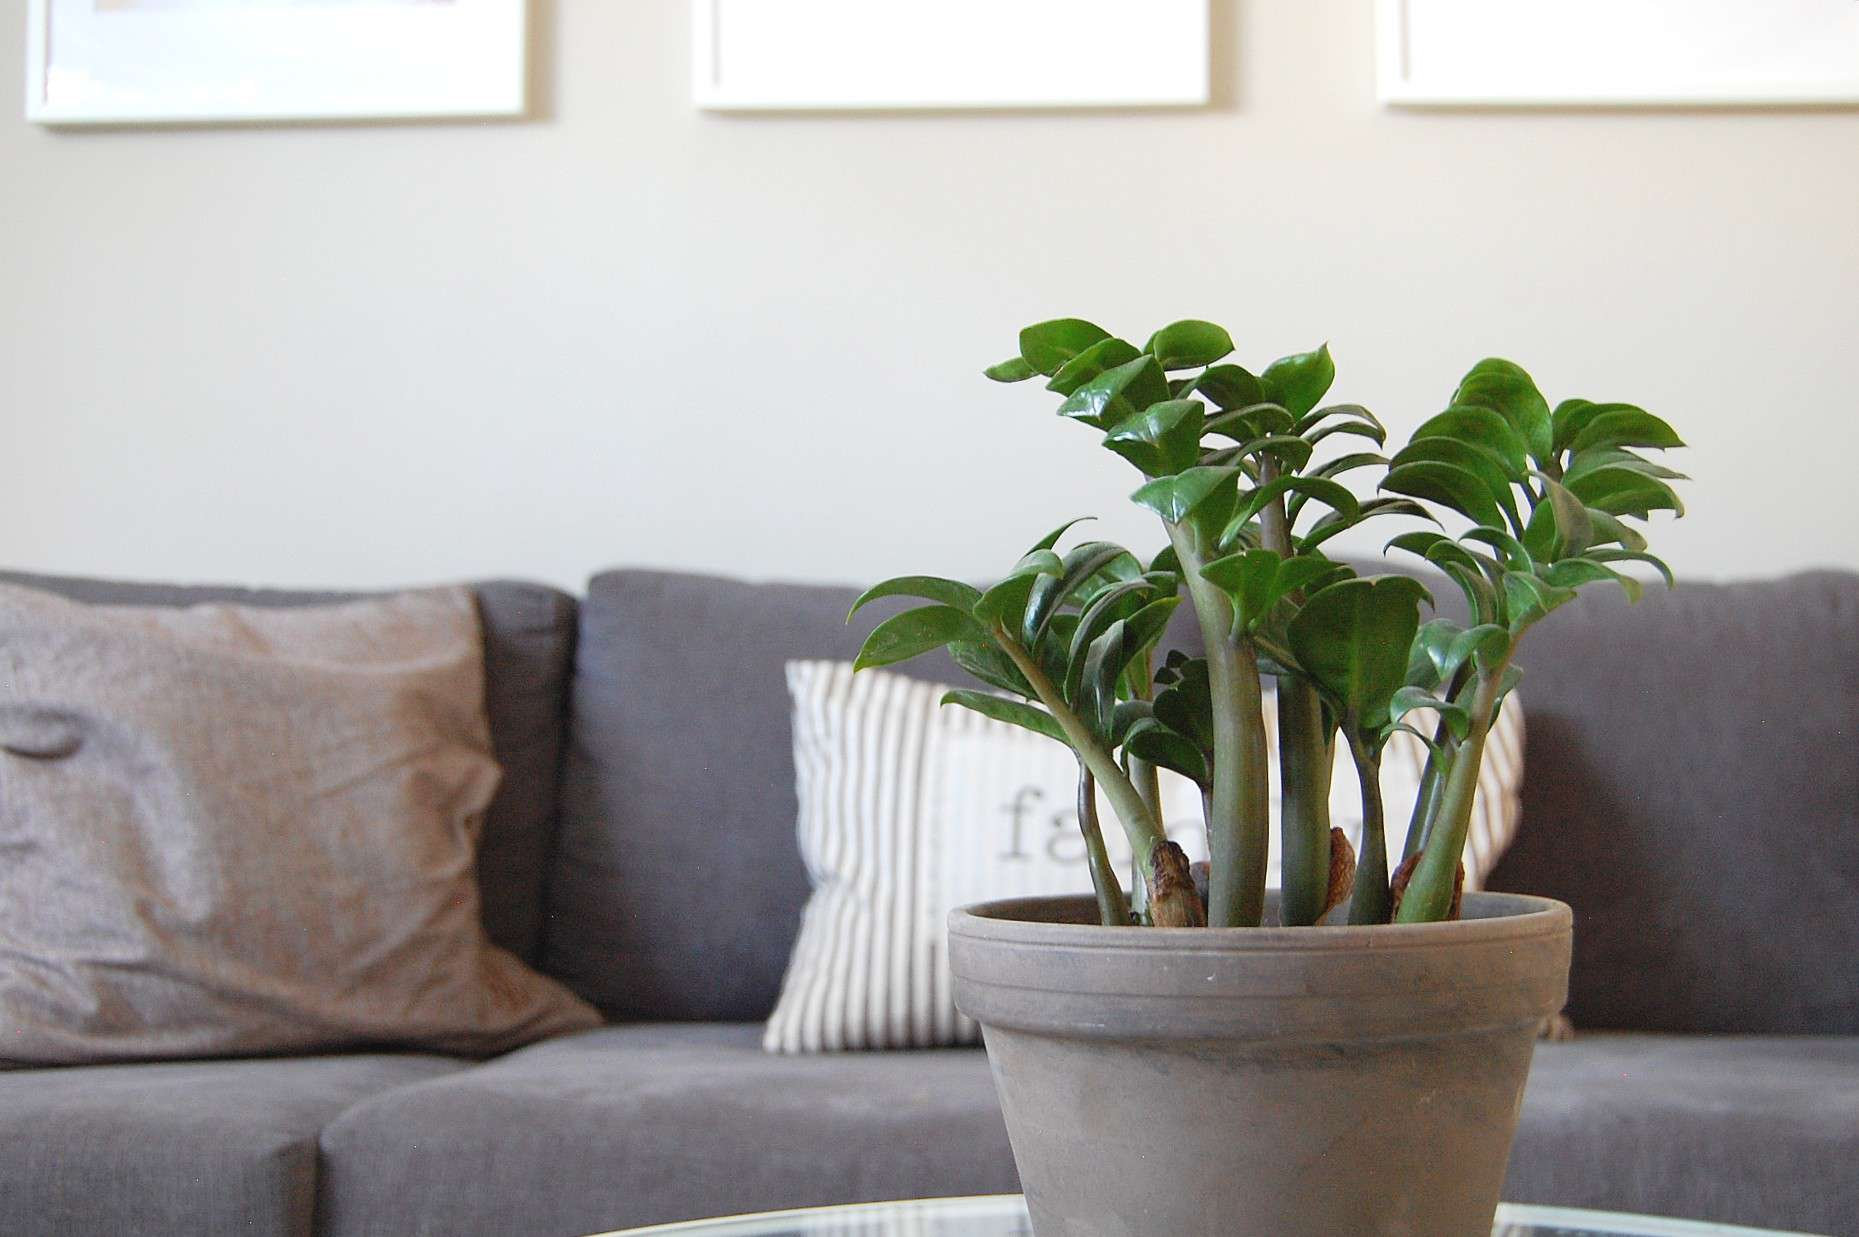 A ZZ Plant sits on a coffee table in front of a grey couch.